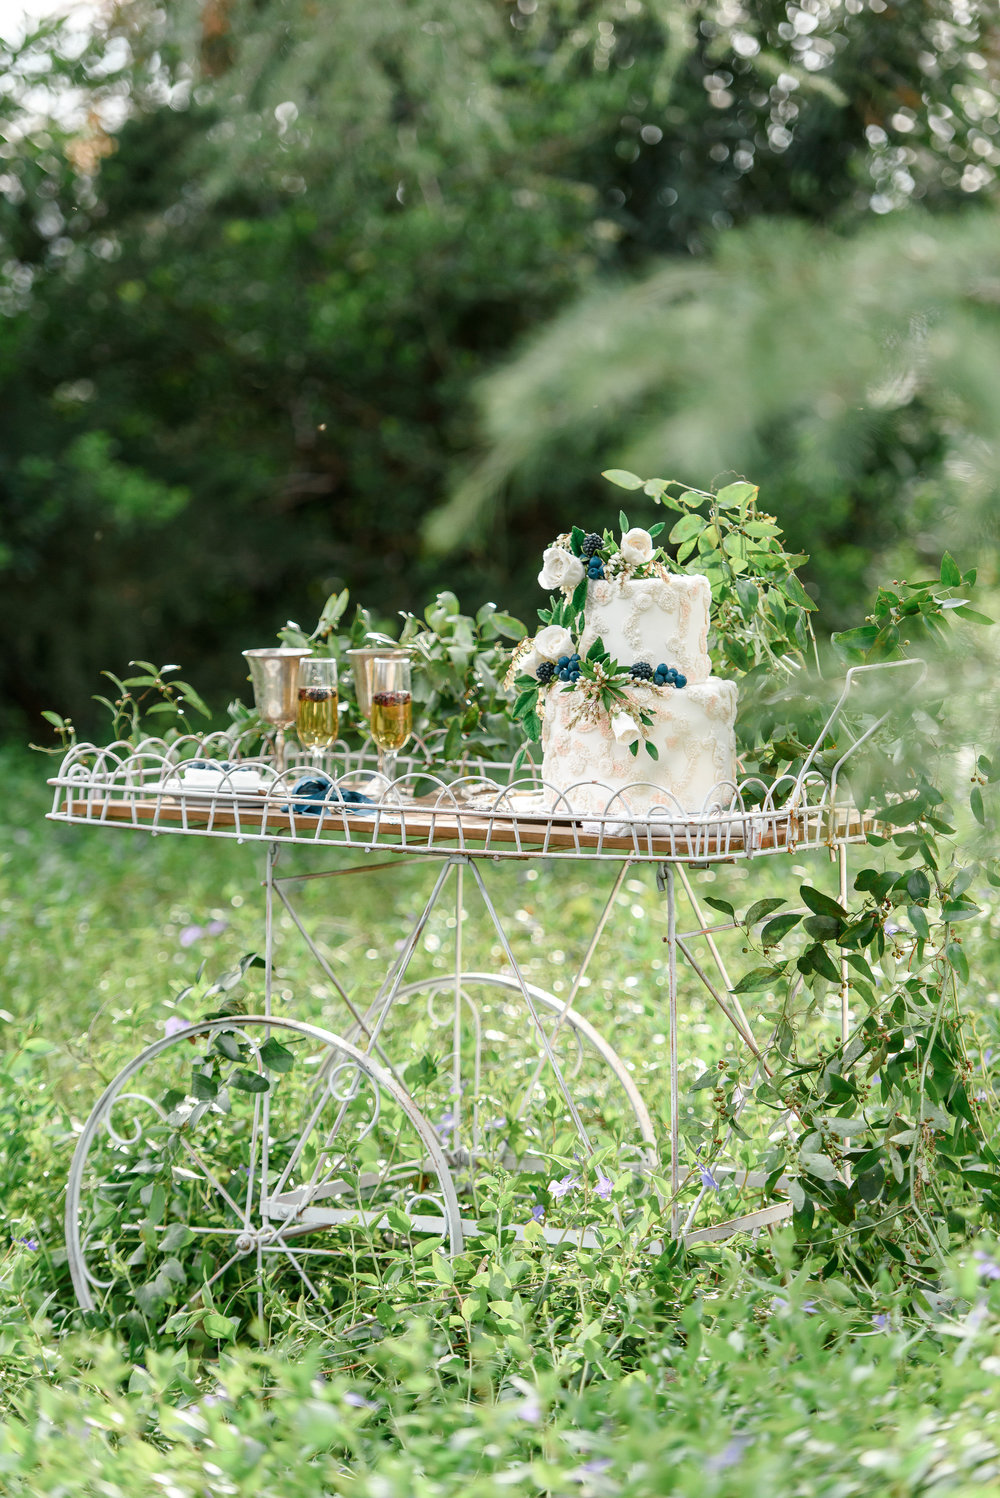 Garden Wedding Inspiration | Cake Display | Wedding Cake